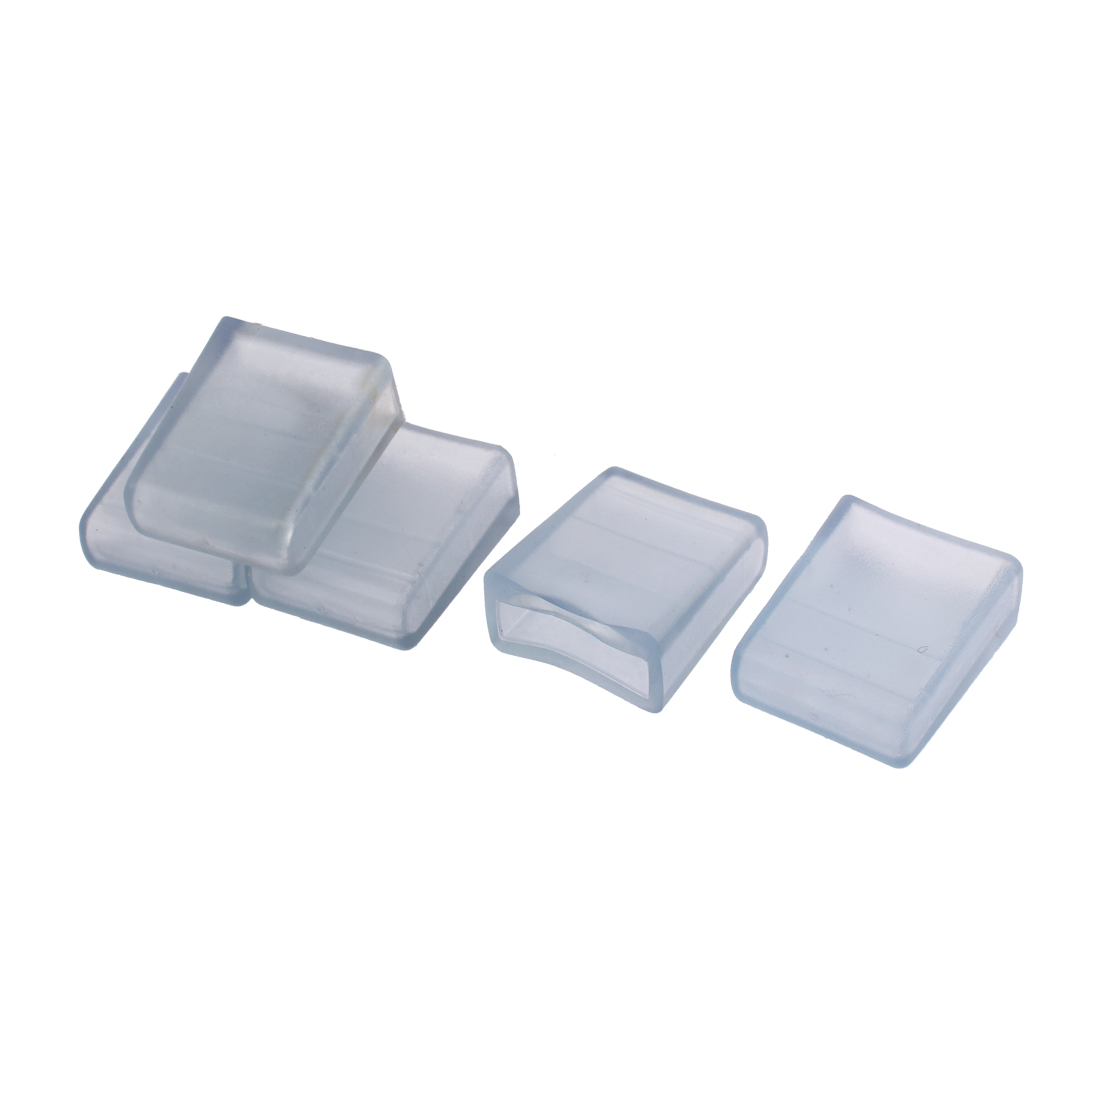 5 Pcs Clear Blue PVC 30mm x 10mm Furniture Table Desk Leg Foot Covers Caps